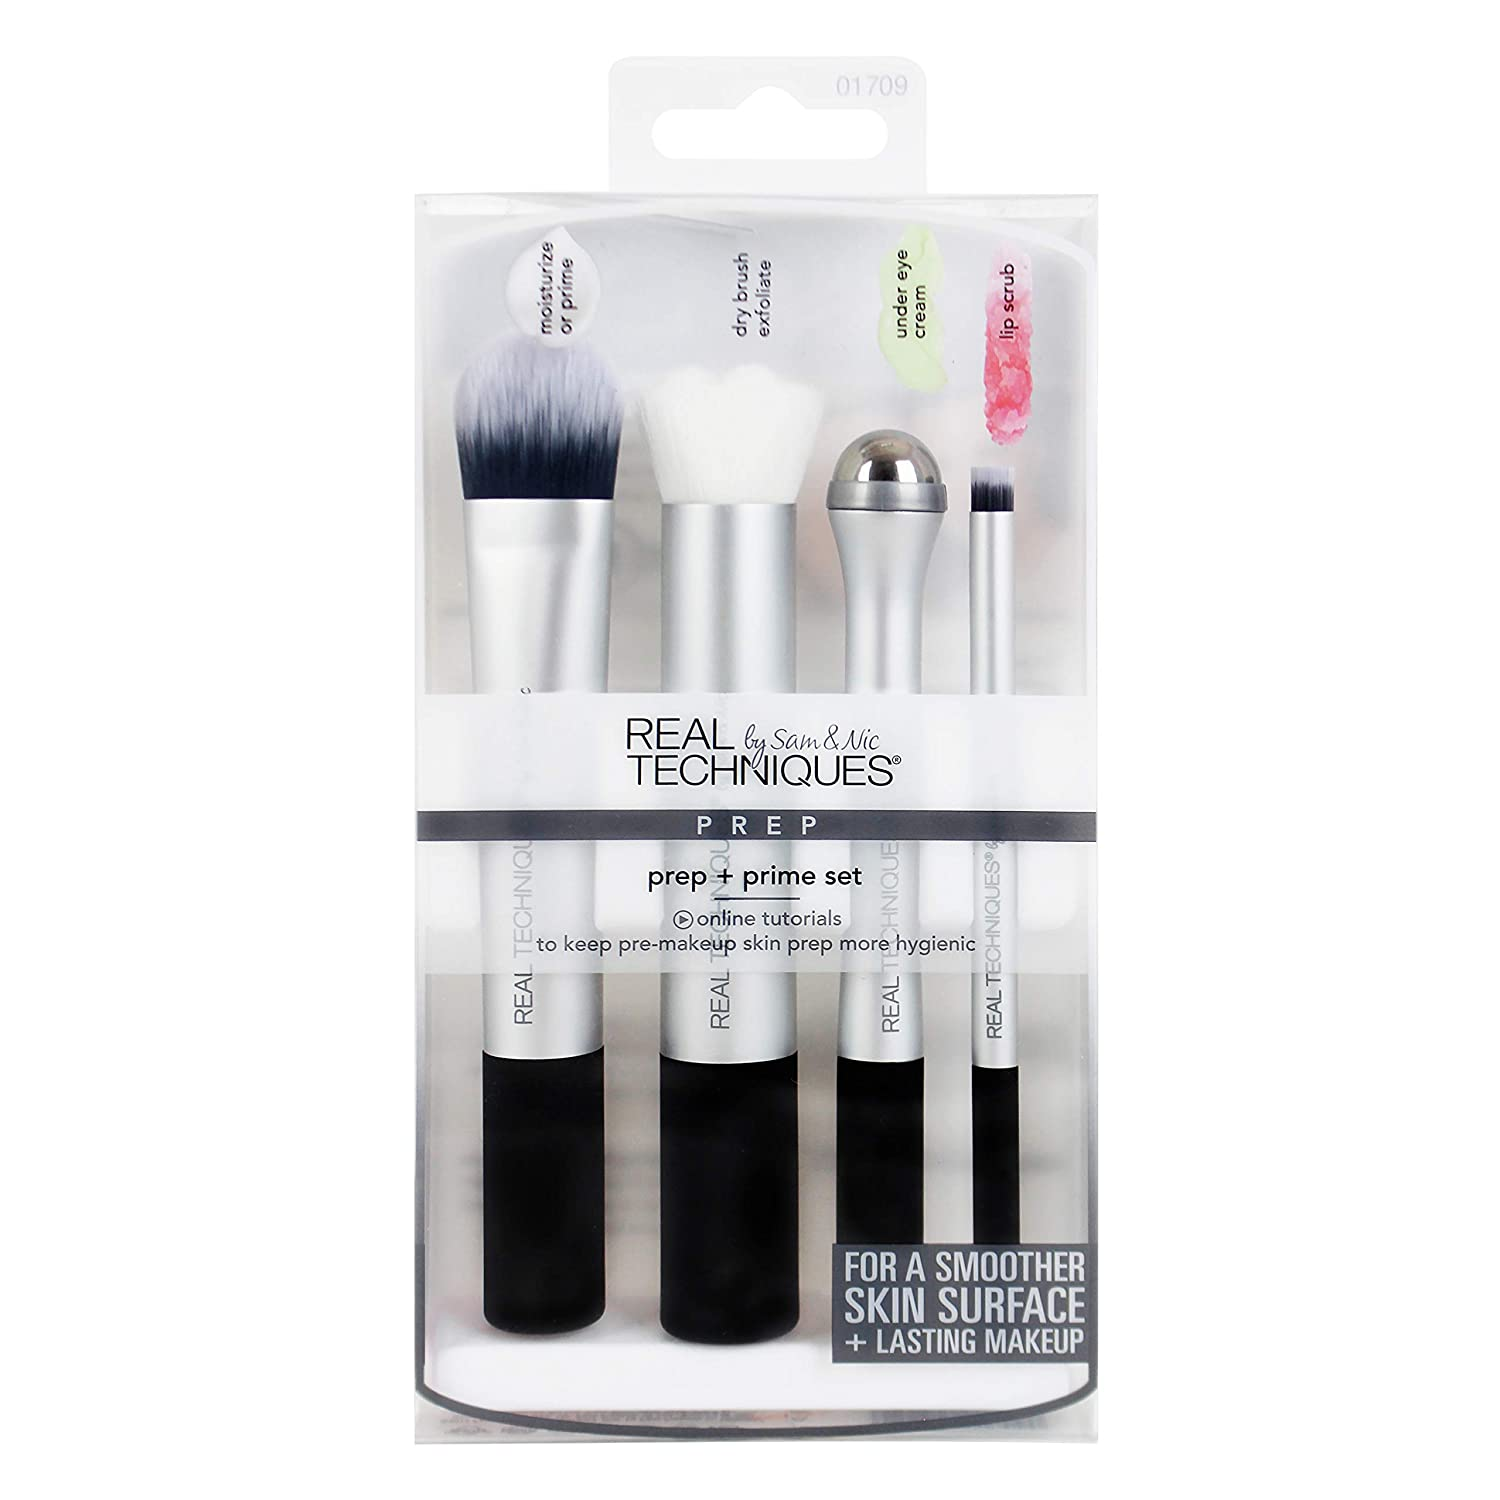 Real Techniques Prep & Prime Makeup Brush Set For Pre-Makeup Routine: Moisturizers Serums Primers Masks Eye Cream Exfoliation (Packaging May Vary)